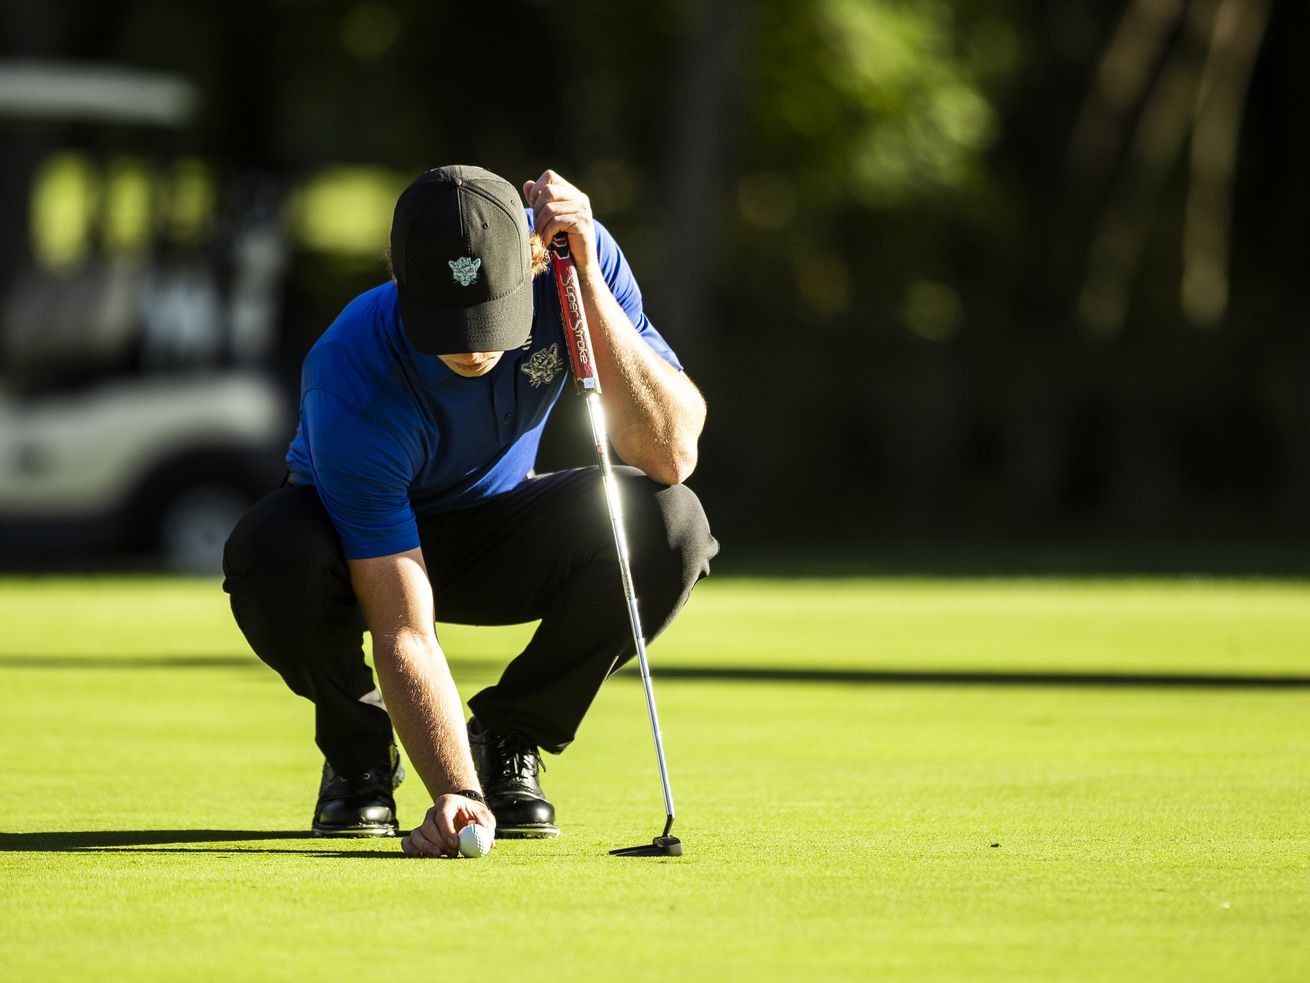 File: Carson Lundell places the ball for a putt. He and the Cougars are ranked in the top 10 for the first time this year. Lundell fired a 71 Tuesday at the U.S. Men's Amateur, after shooting a 69 on Monday, to finish at 3-under-par 140 in a tie for 16th place in medal play.